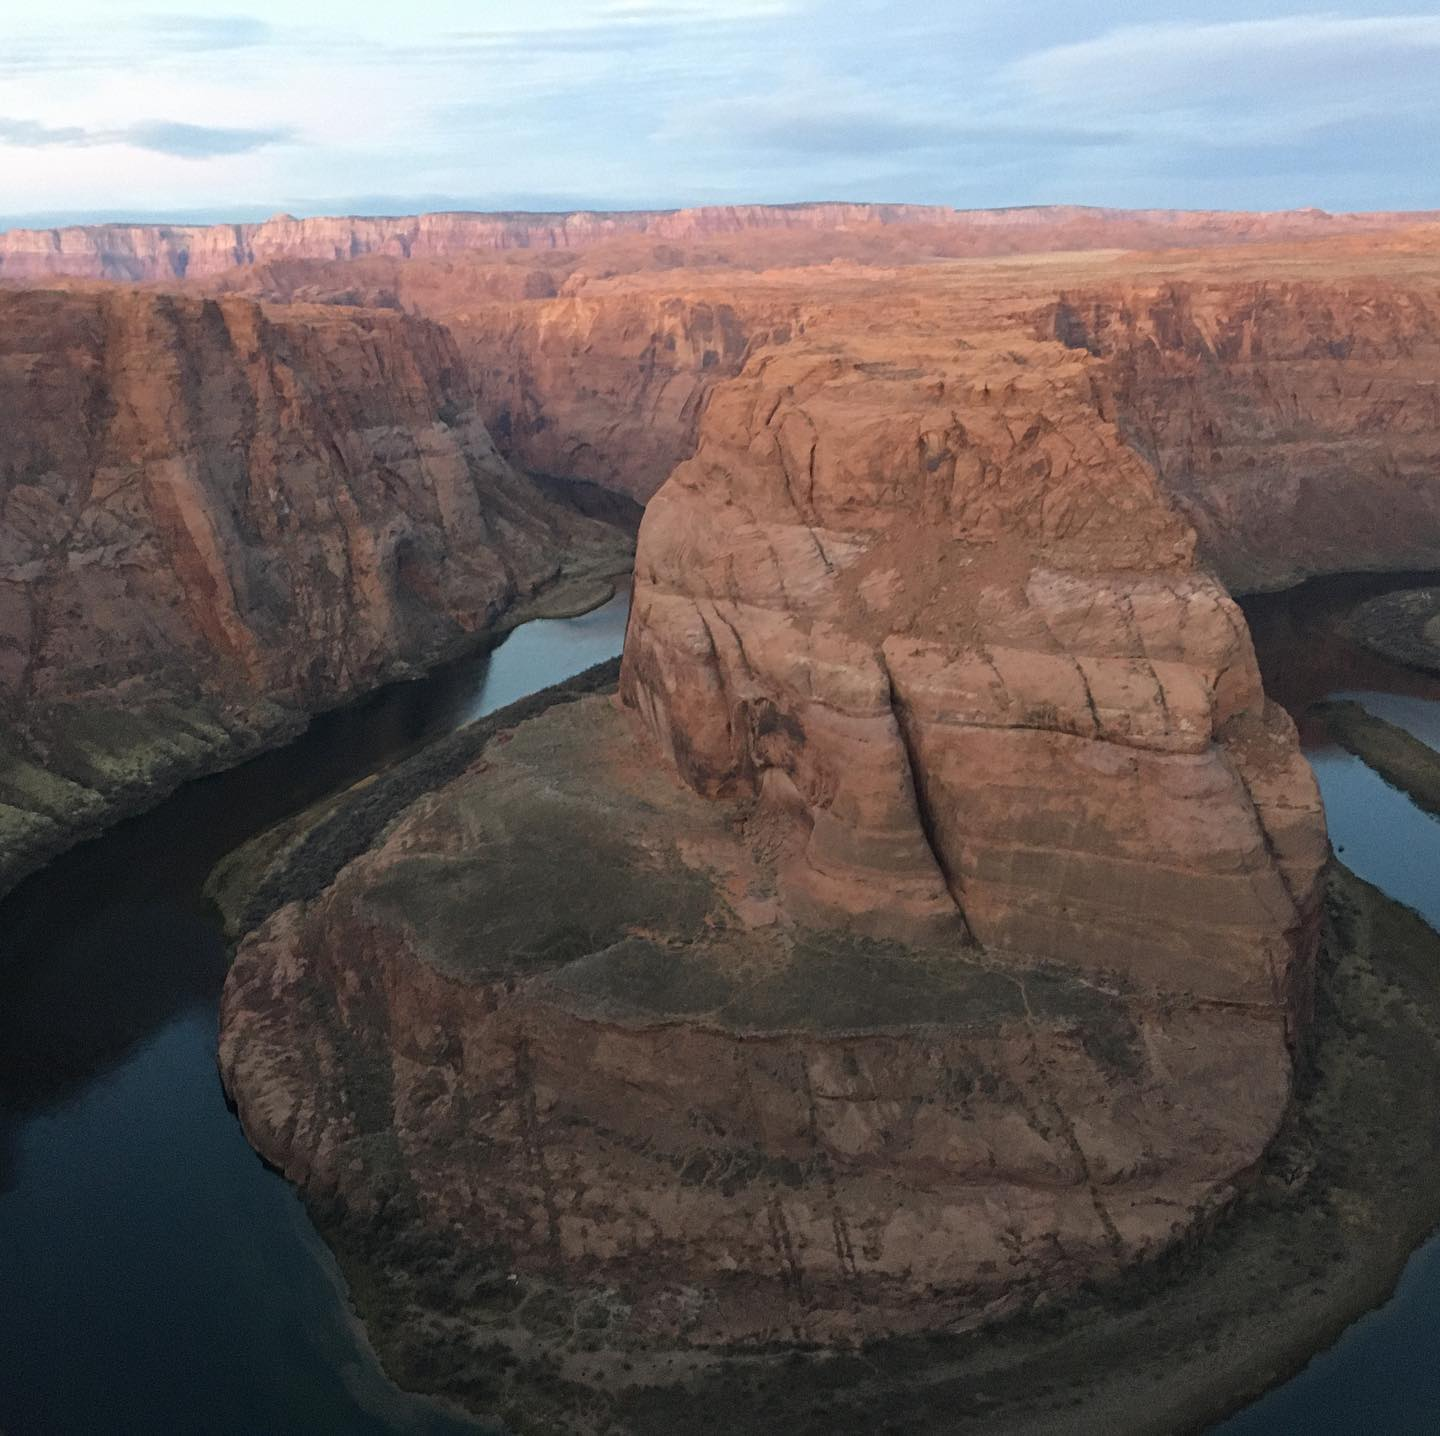 Horseshoe bend. First three pics at sunrise. Last three at sunset. Glad we got up early! #horseshoebend #latergram #pageaz #nofilter #nature #sunrise #sunset